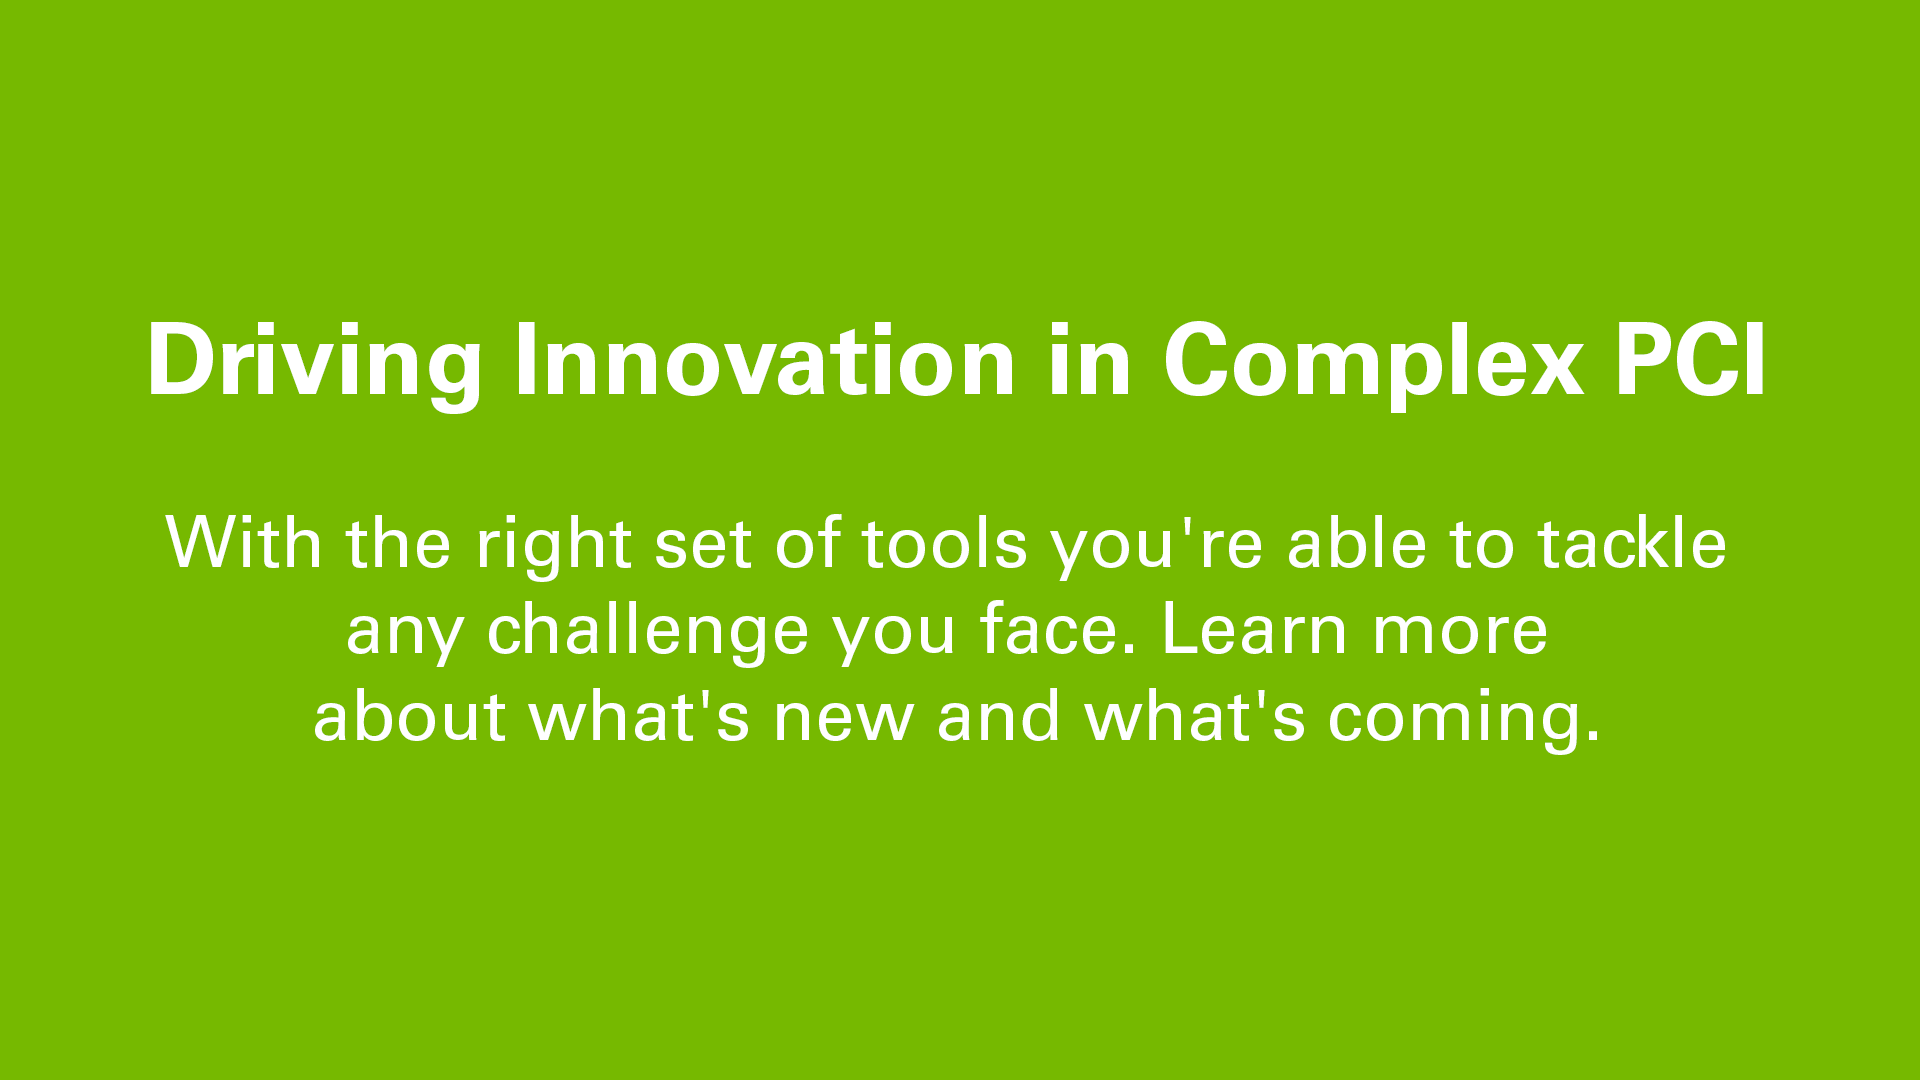 Driving Innovation in Complex PCI:  With the right set of tools you're able to tackle any challenge you face. Learn more about what's new and what's coming.